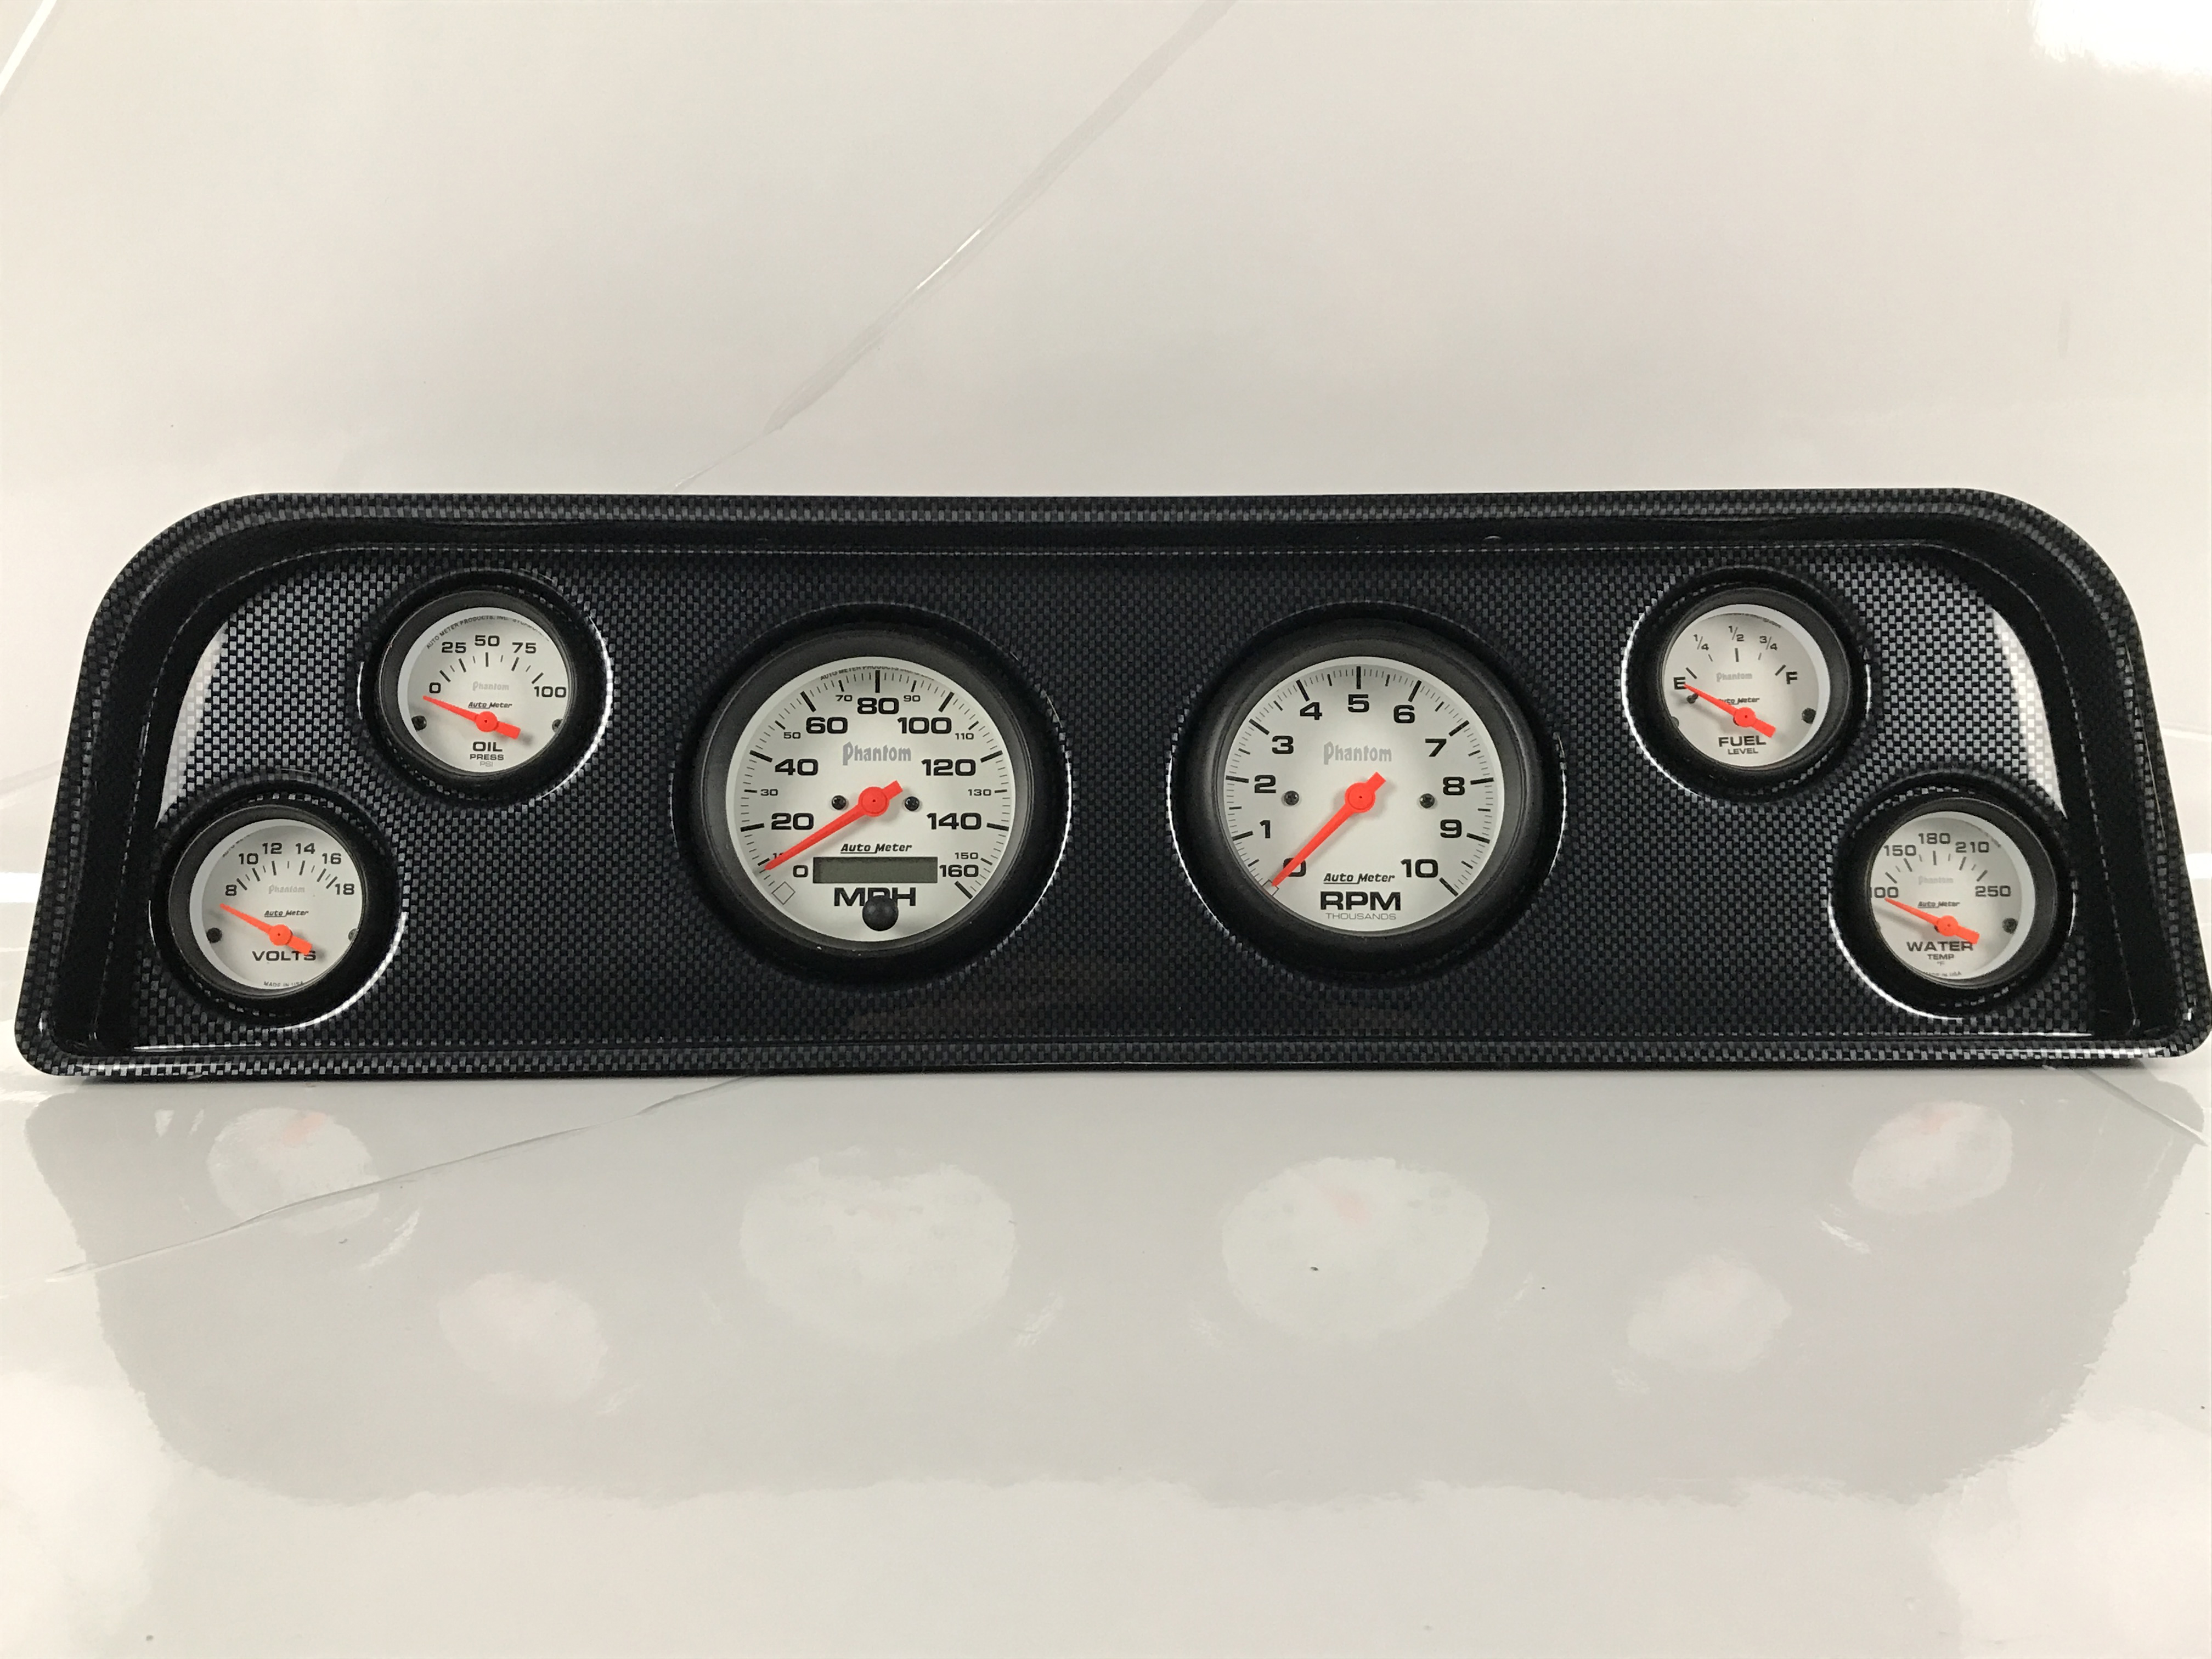 Labeled Instrument Panel For Trucks : Instrument panels for gmc trucks from classic dash